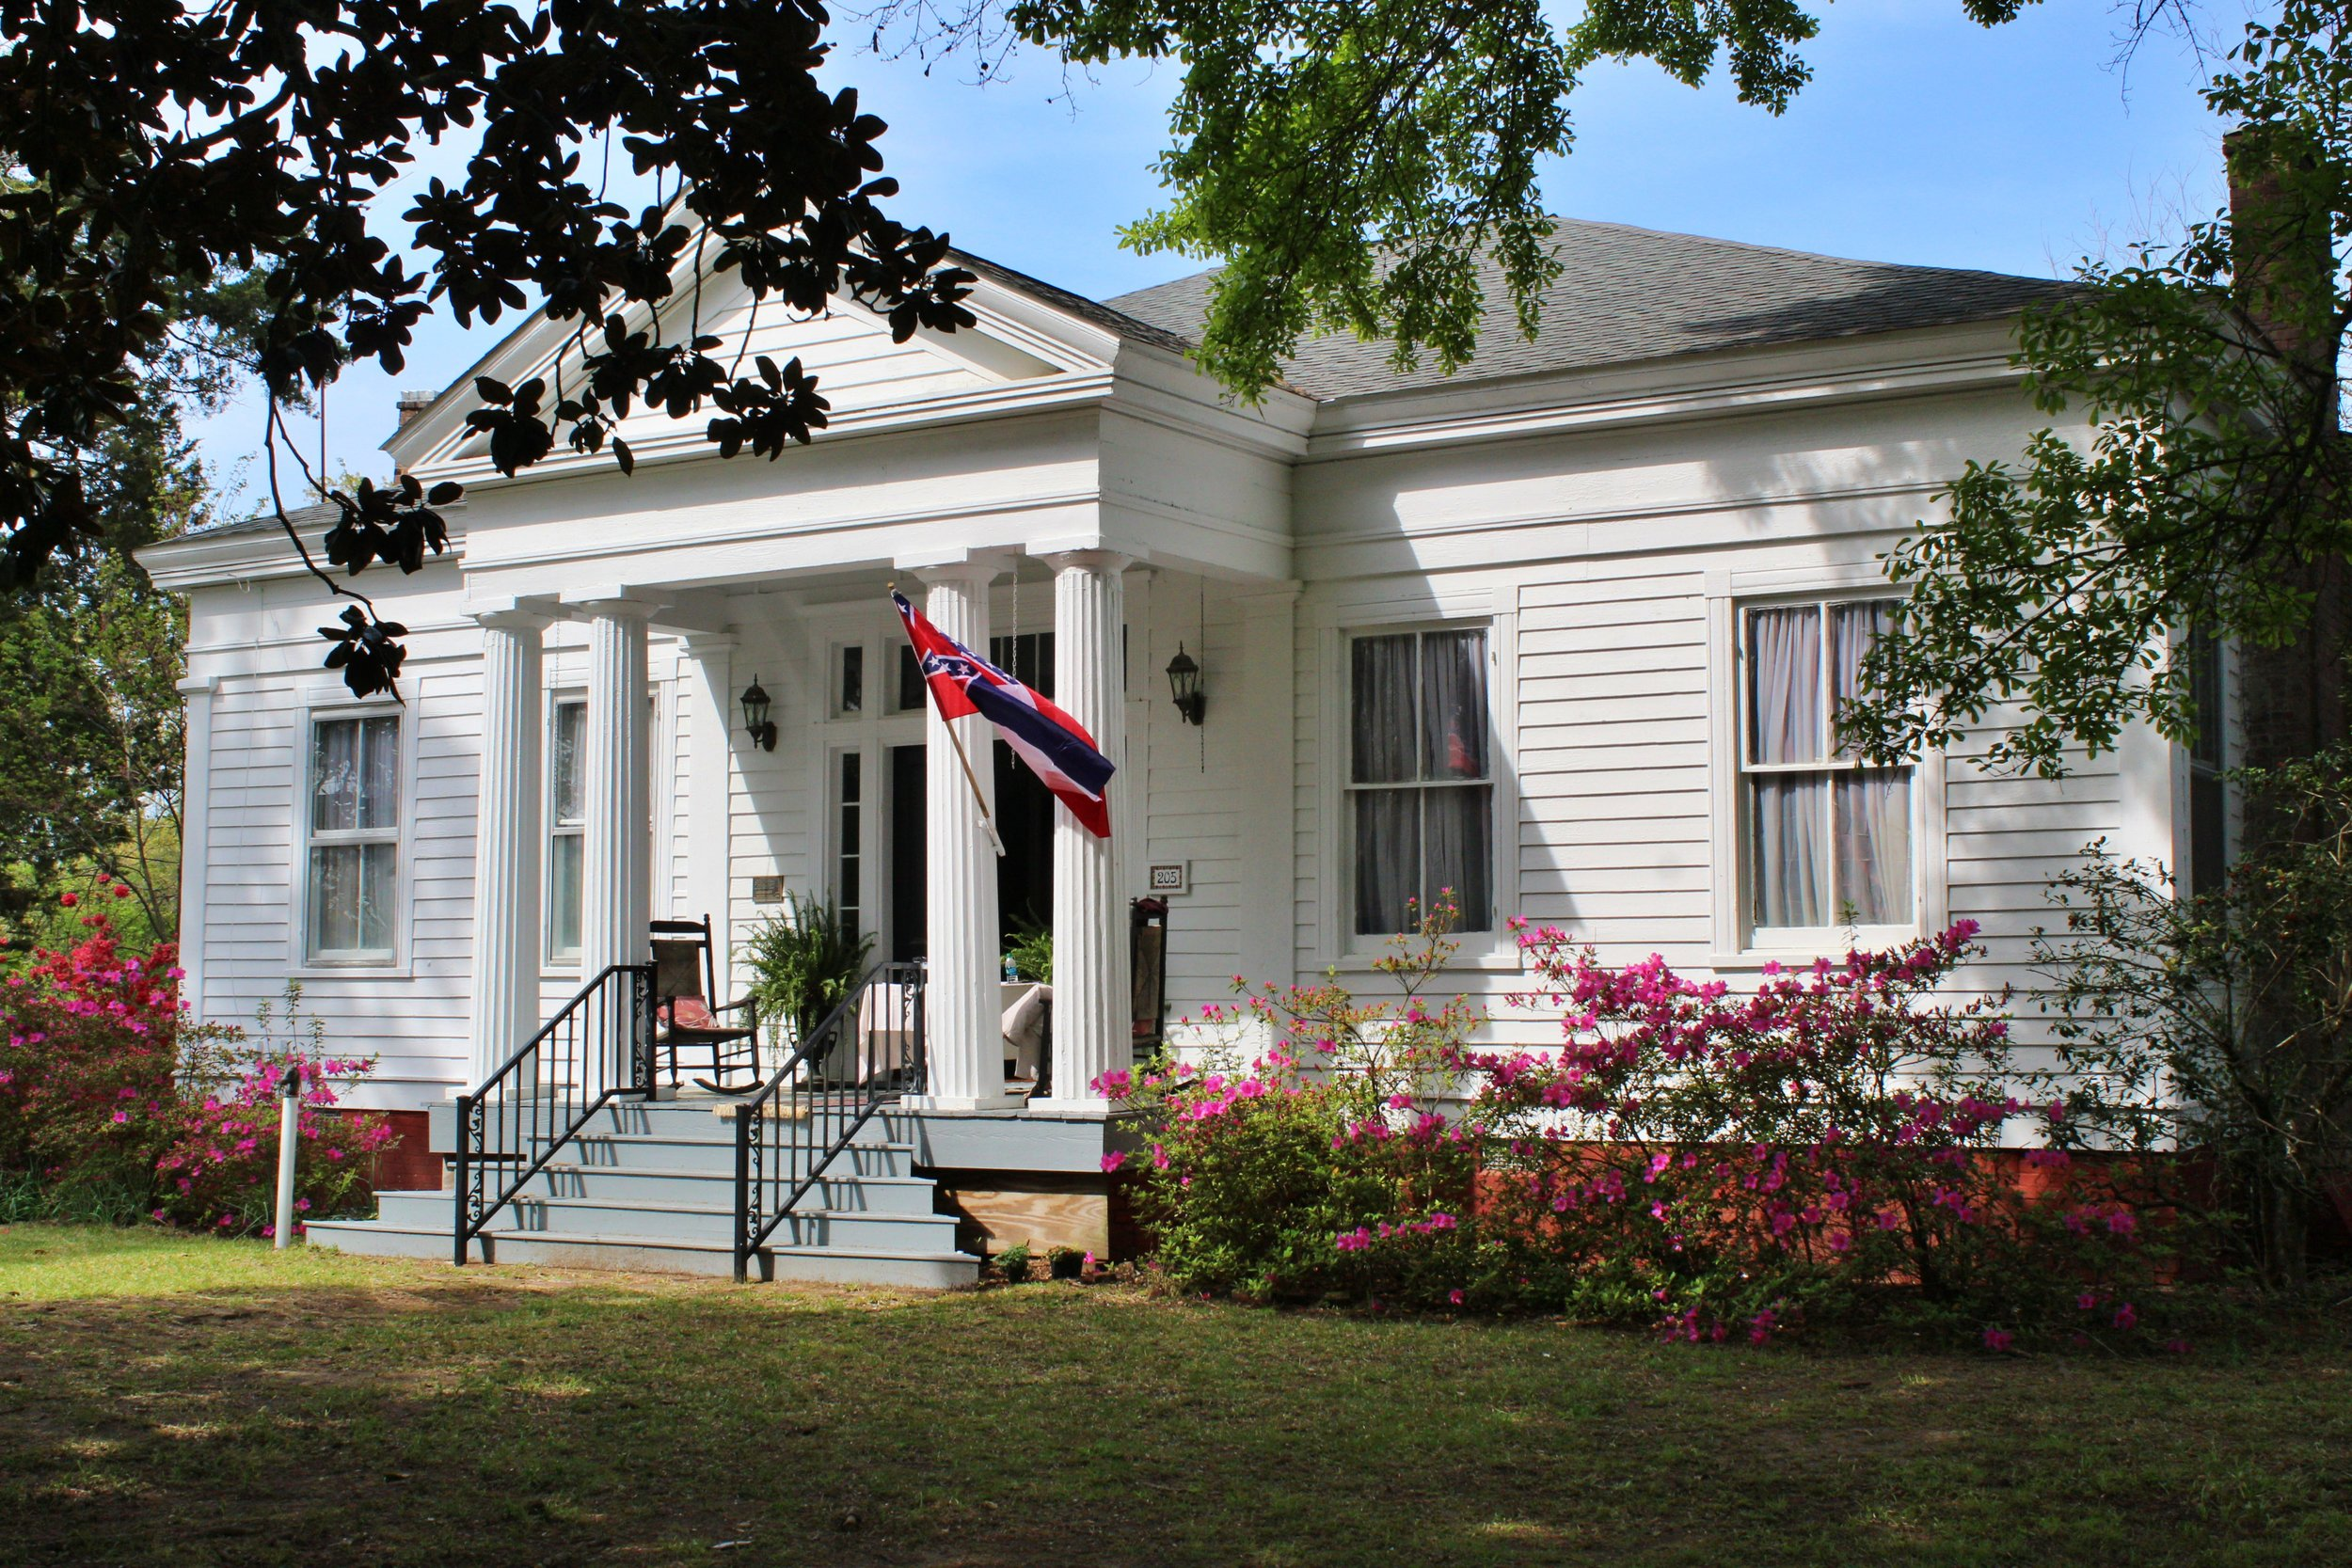 Sunset Manor, Aberdeen, Mississippi, 1836